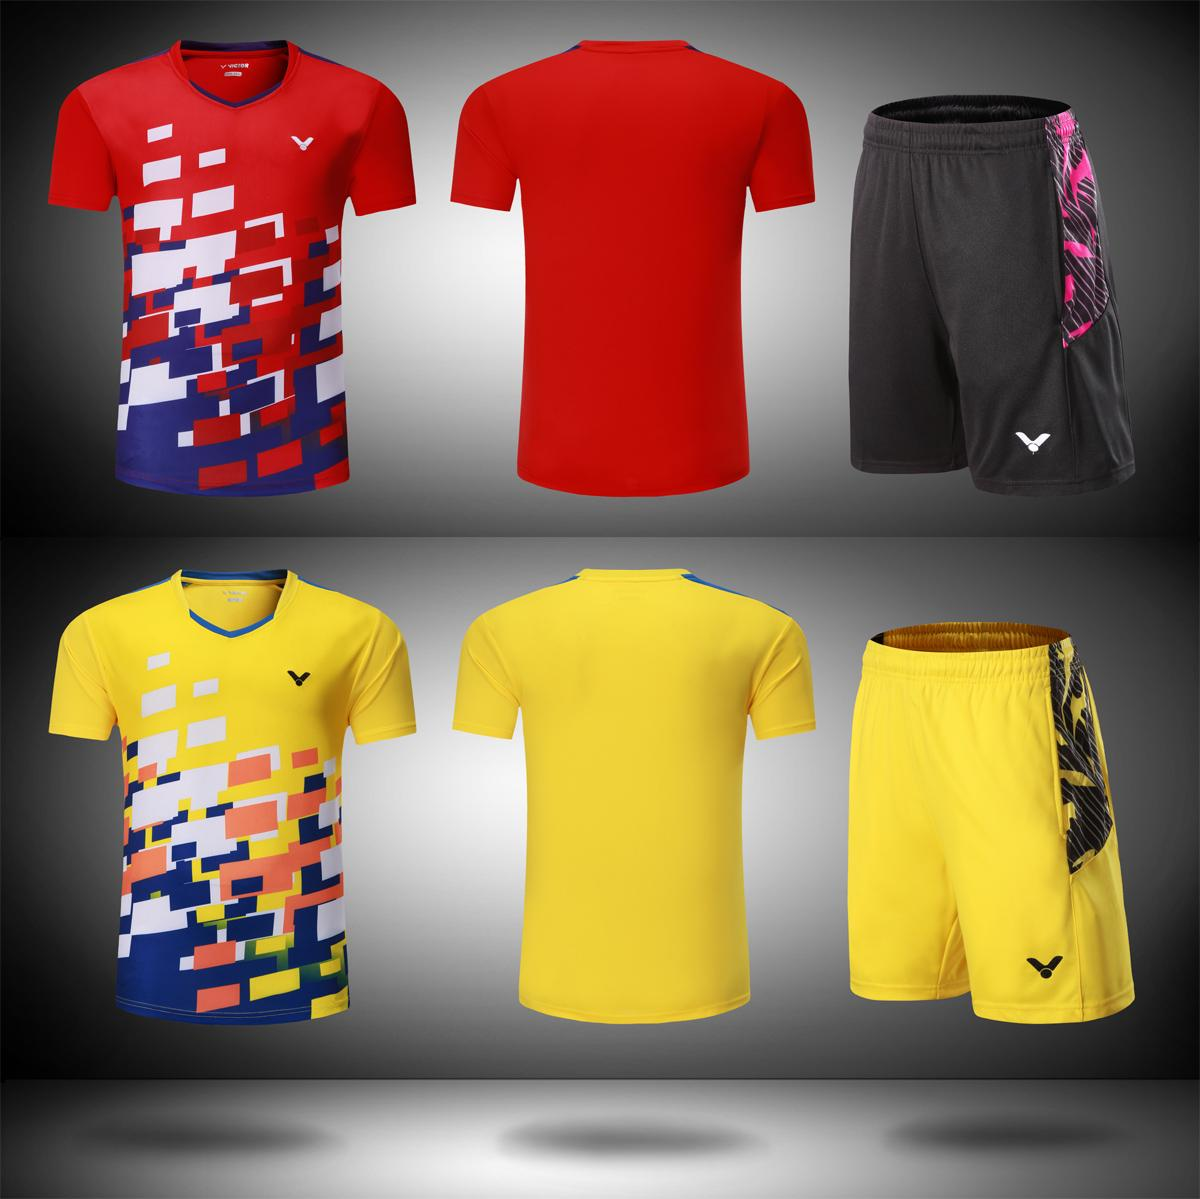 2021 New 2018 Victor Badminton Wear T Shirt Malaysia Competition Badminton Clothes Men Women Clothes Jersey Quick Drying Table Tennis Shorts From Wm0827 13 61 Dhgate Com